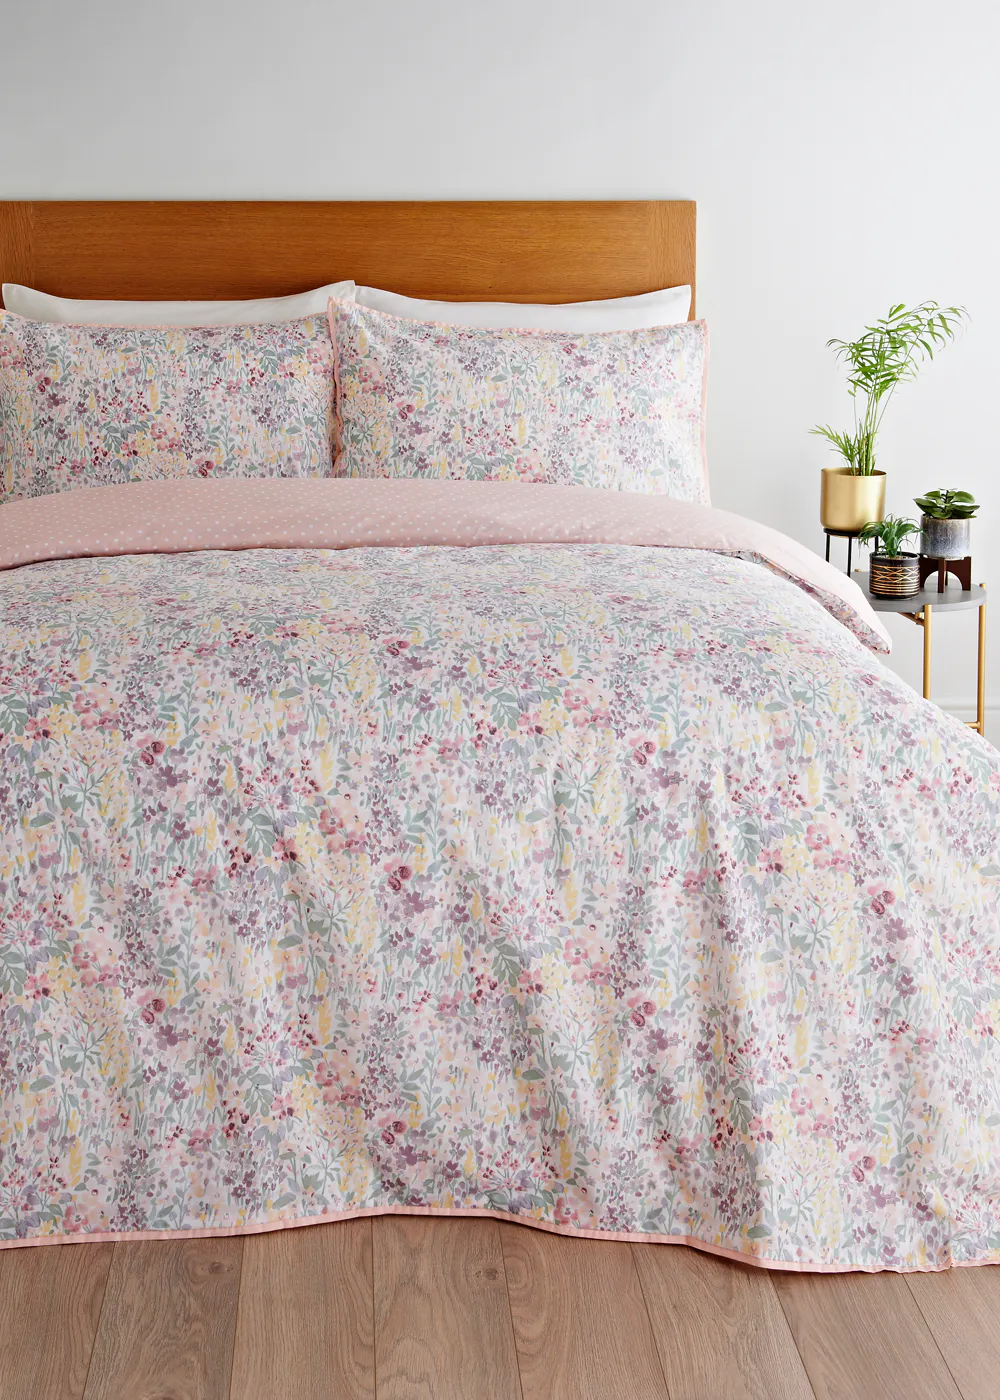 Reversible Meadow Floral Duvet Cover Pink In 2020 Duvet Covers Duvet Home Decor